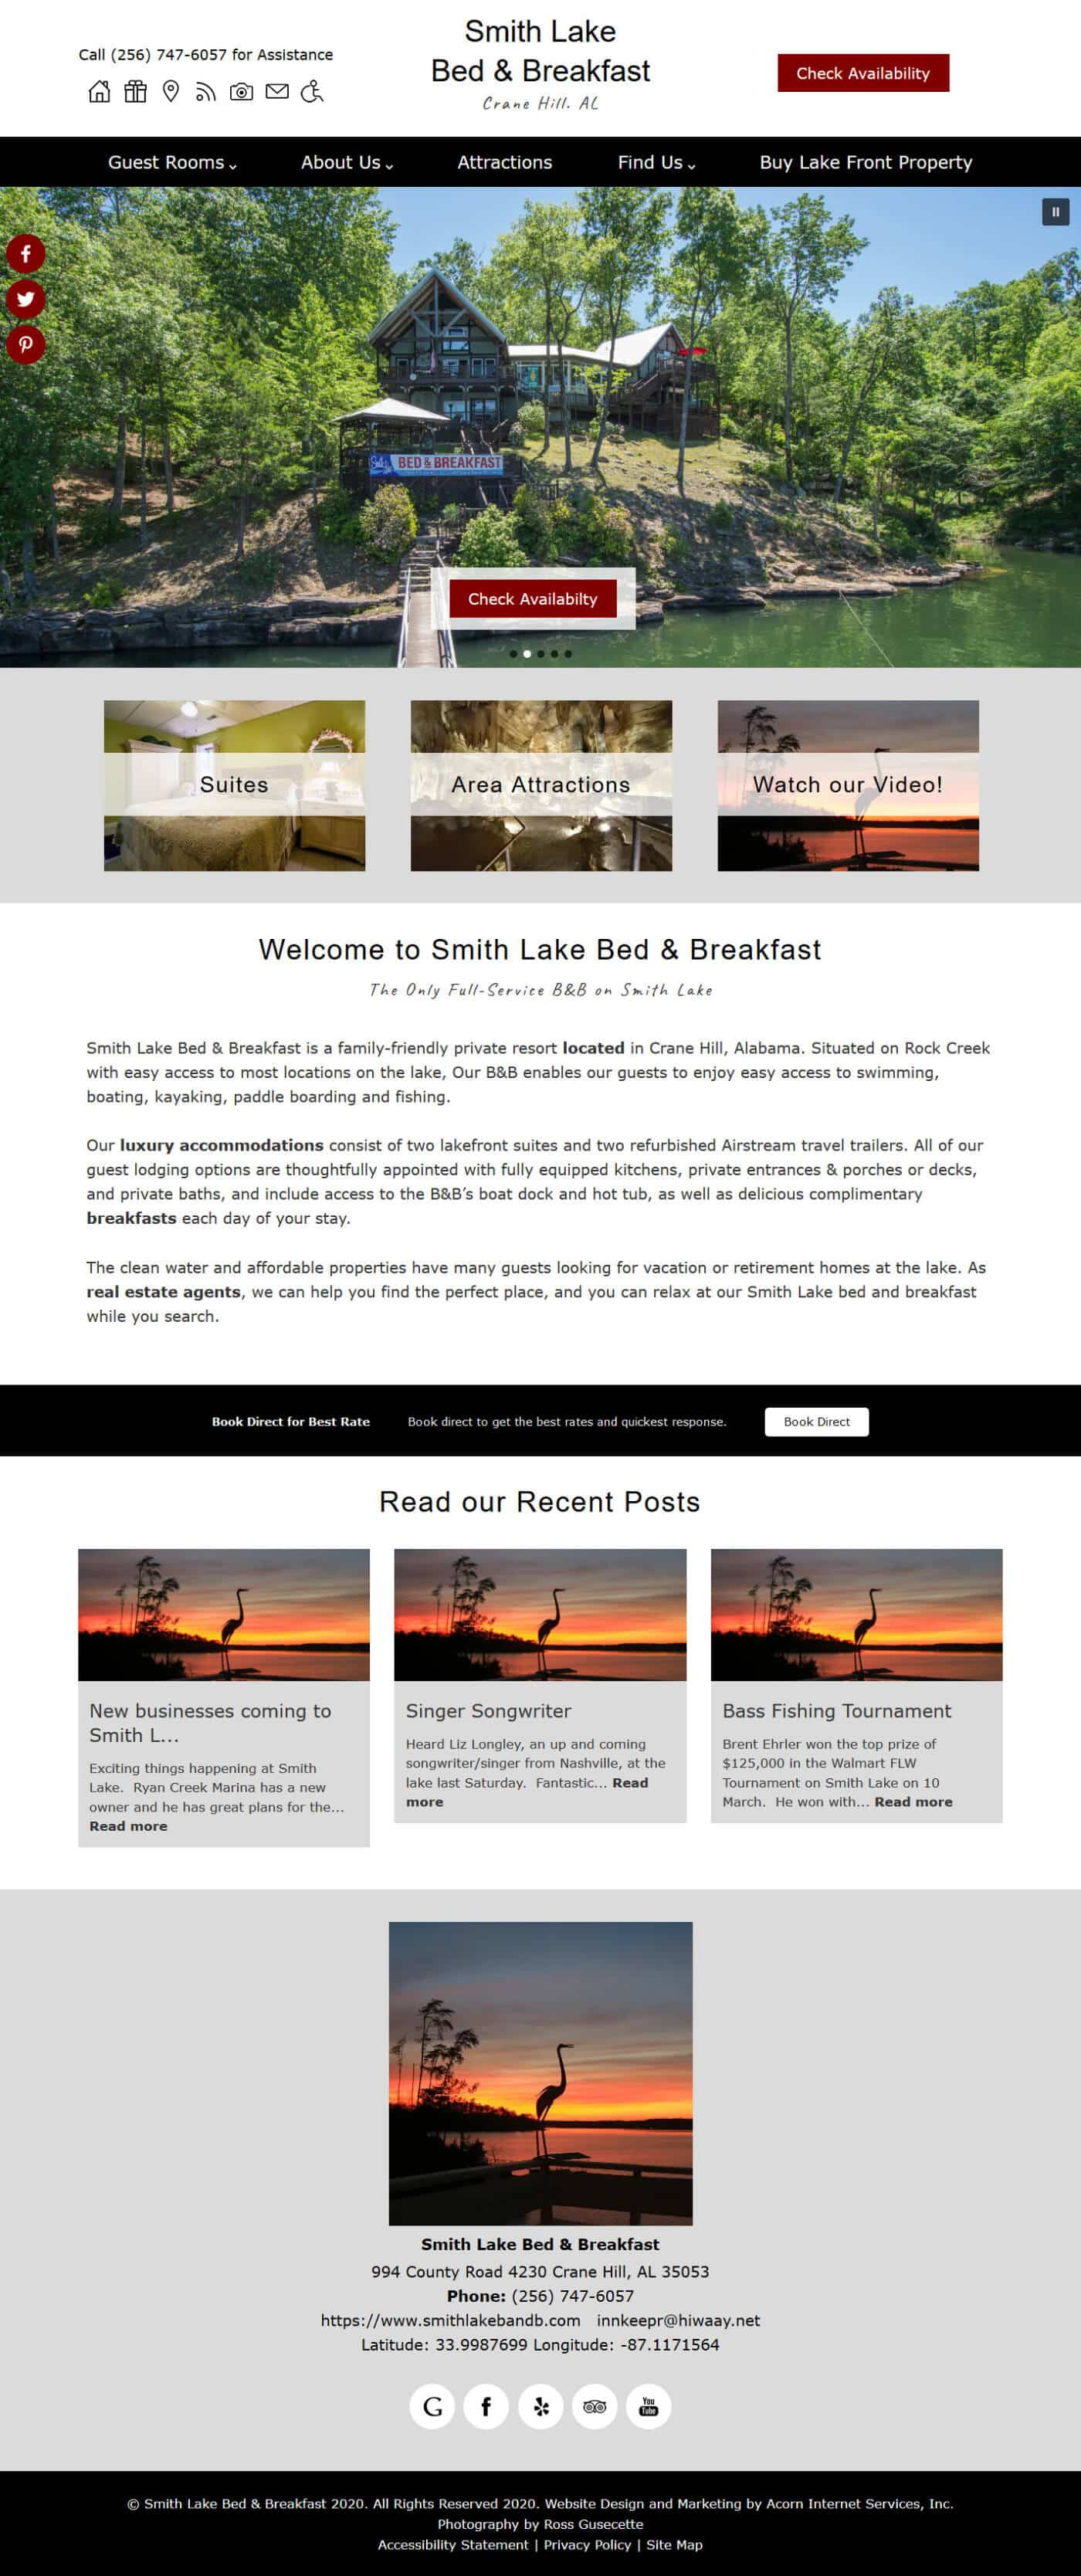 Screenshot of the home page of Smith Lake Bed & Breakfast